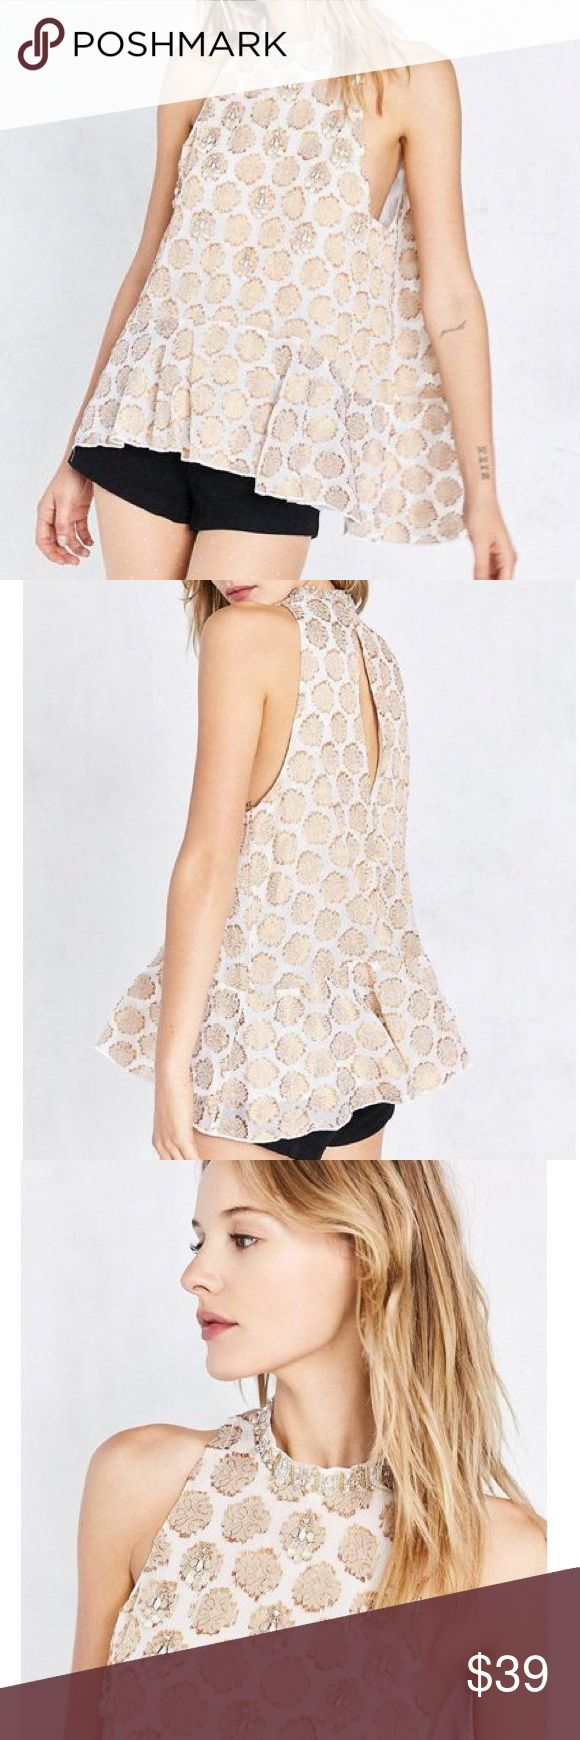 """Urban outfitters beaded gold swing tank S/M Brand new with tags. Gold high neck swing tank jacquard print by kimchi blue of urban outfitters. Light woven application sleeveless low armholes, loose fit and ruffle peplum hem. Finished with keyhole clasp closure at the back. Rayon/polyester/metallic. Chest 36"""" length 25"""" 🌷 will ship after 5/9. Urban Outfitters Tops Blouses"""